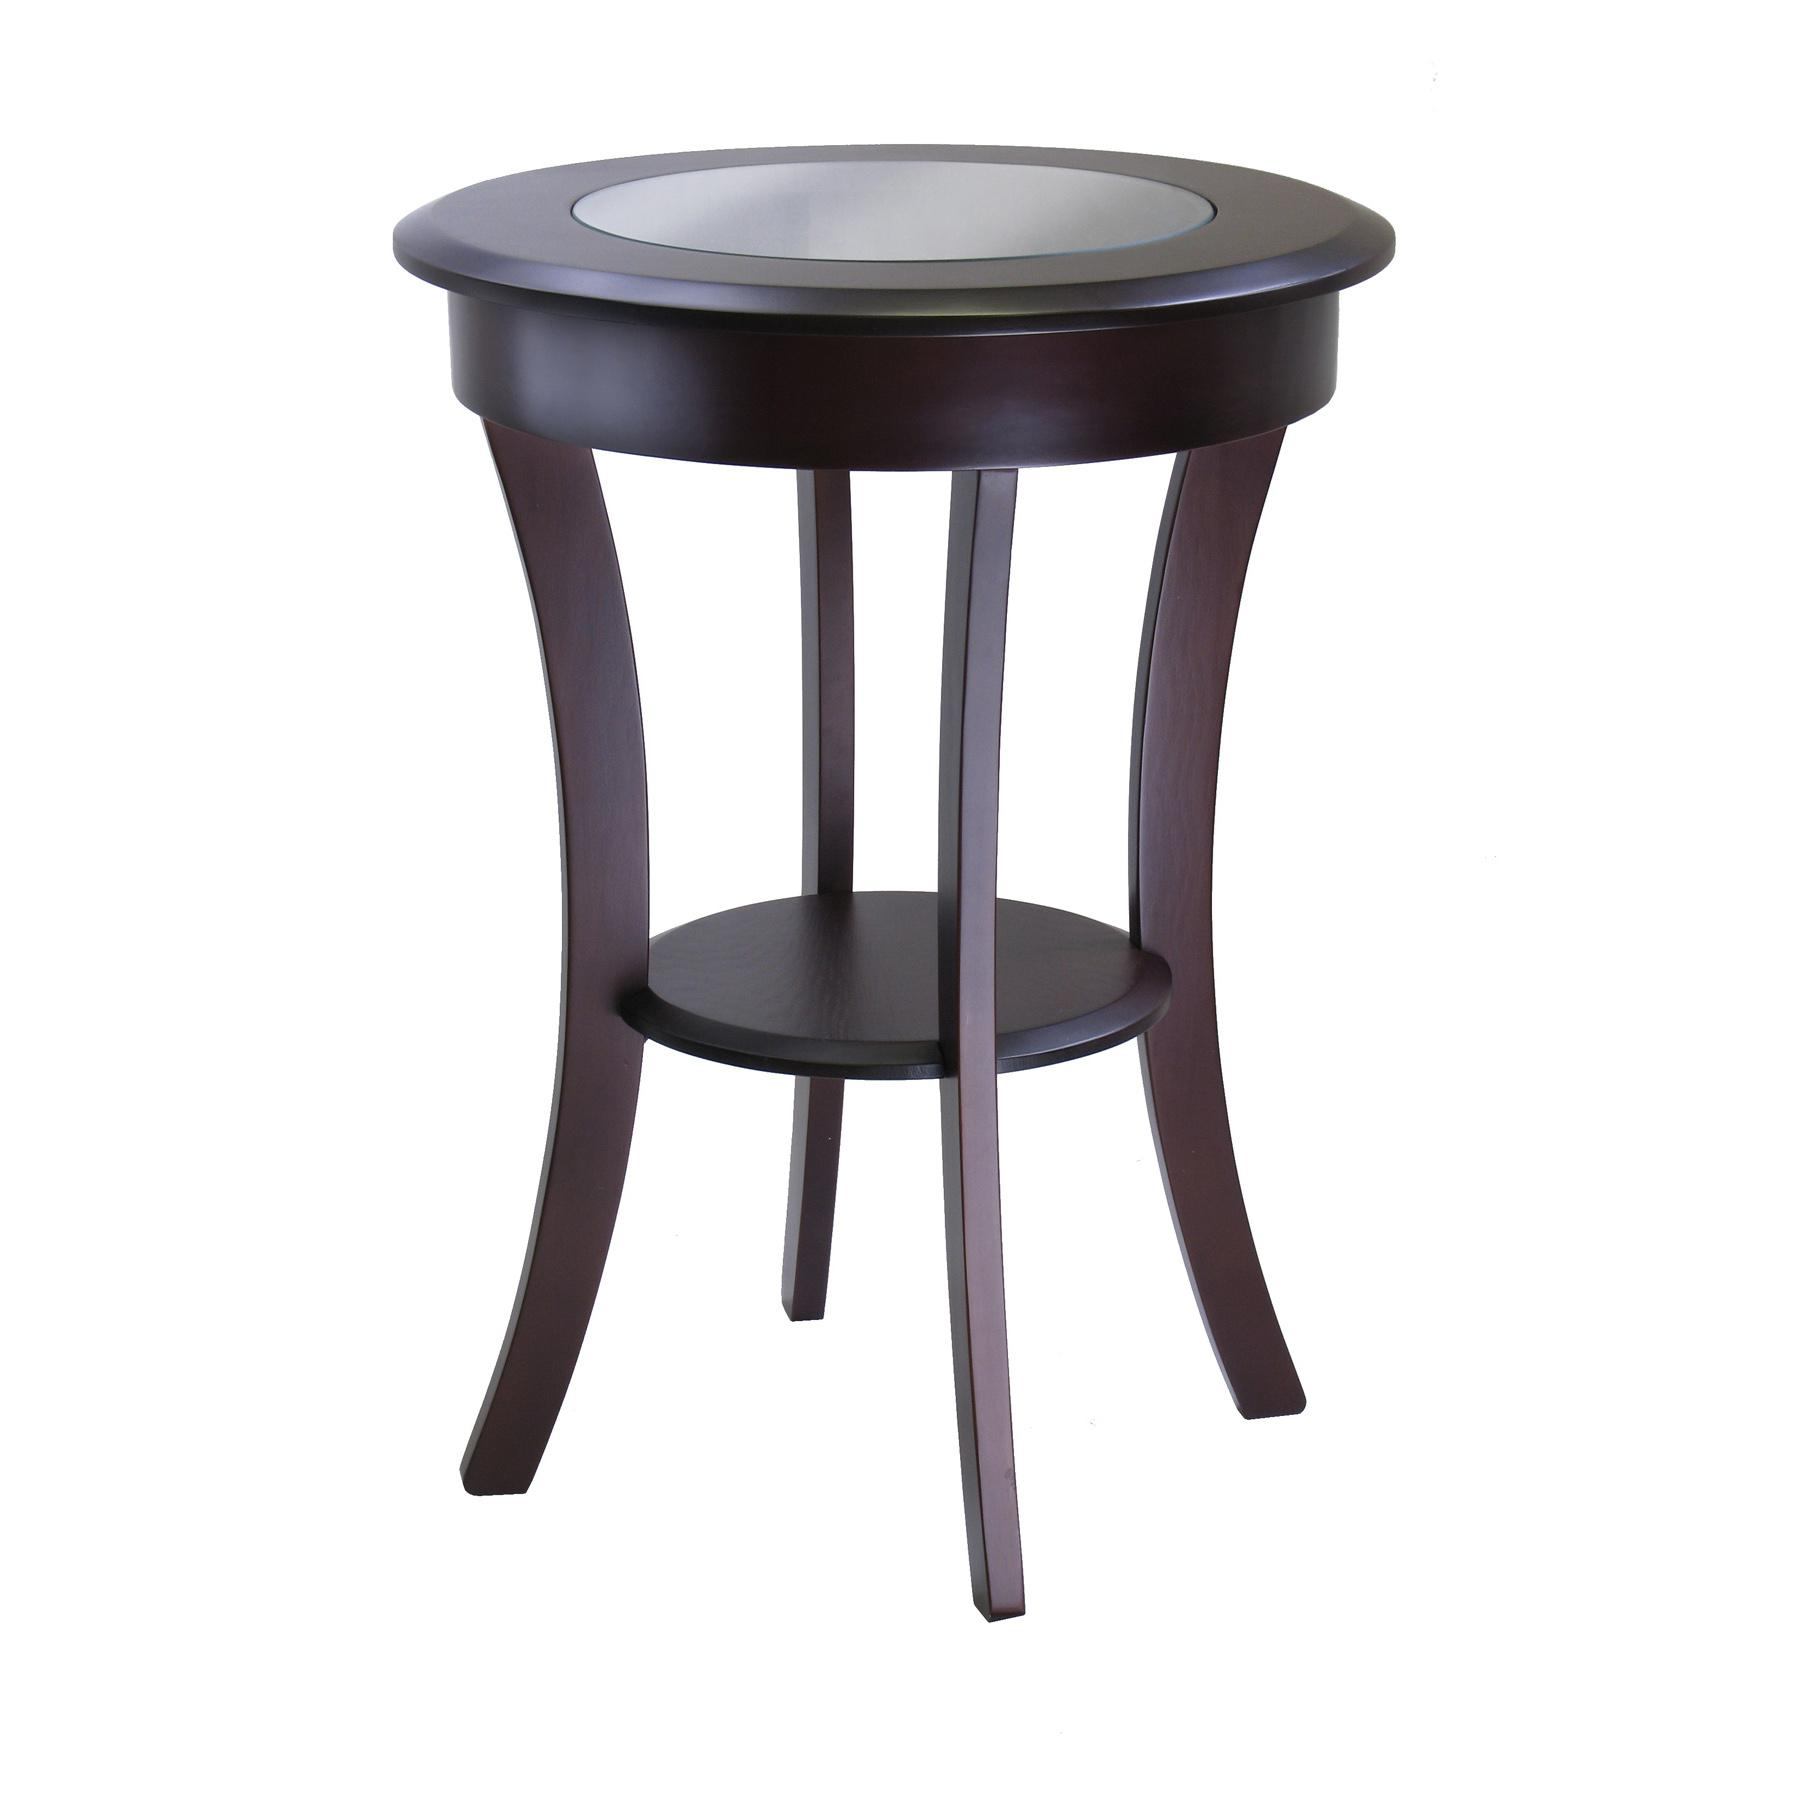 surprising inch tall round accent table decorating patio cover rentals chairs rent tablecloth and tables ideas small for stools covers kitchen full size black white coffee welcome